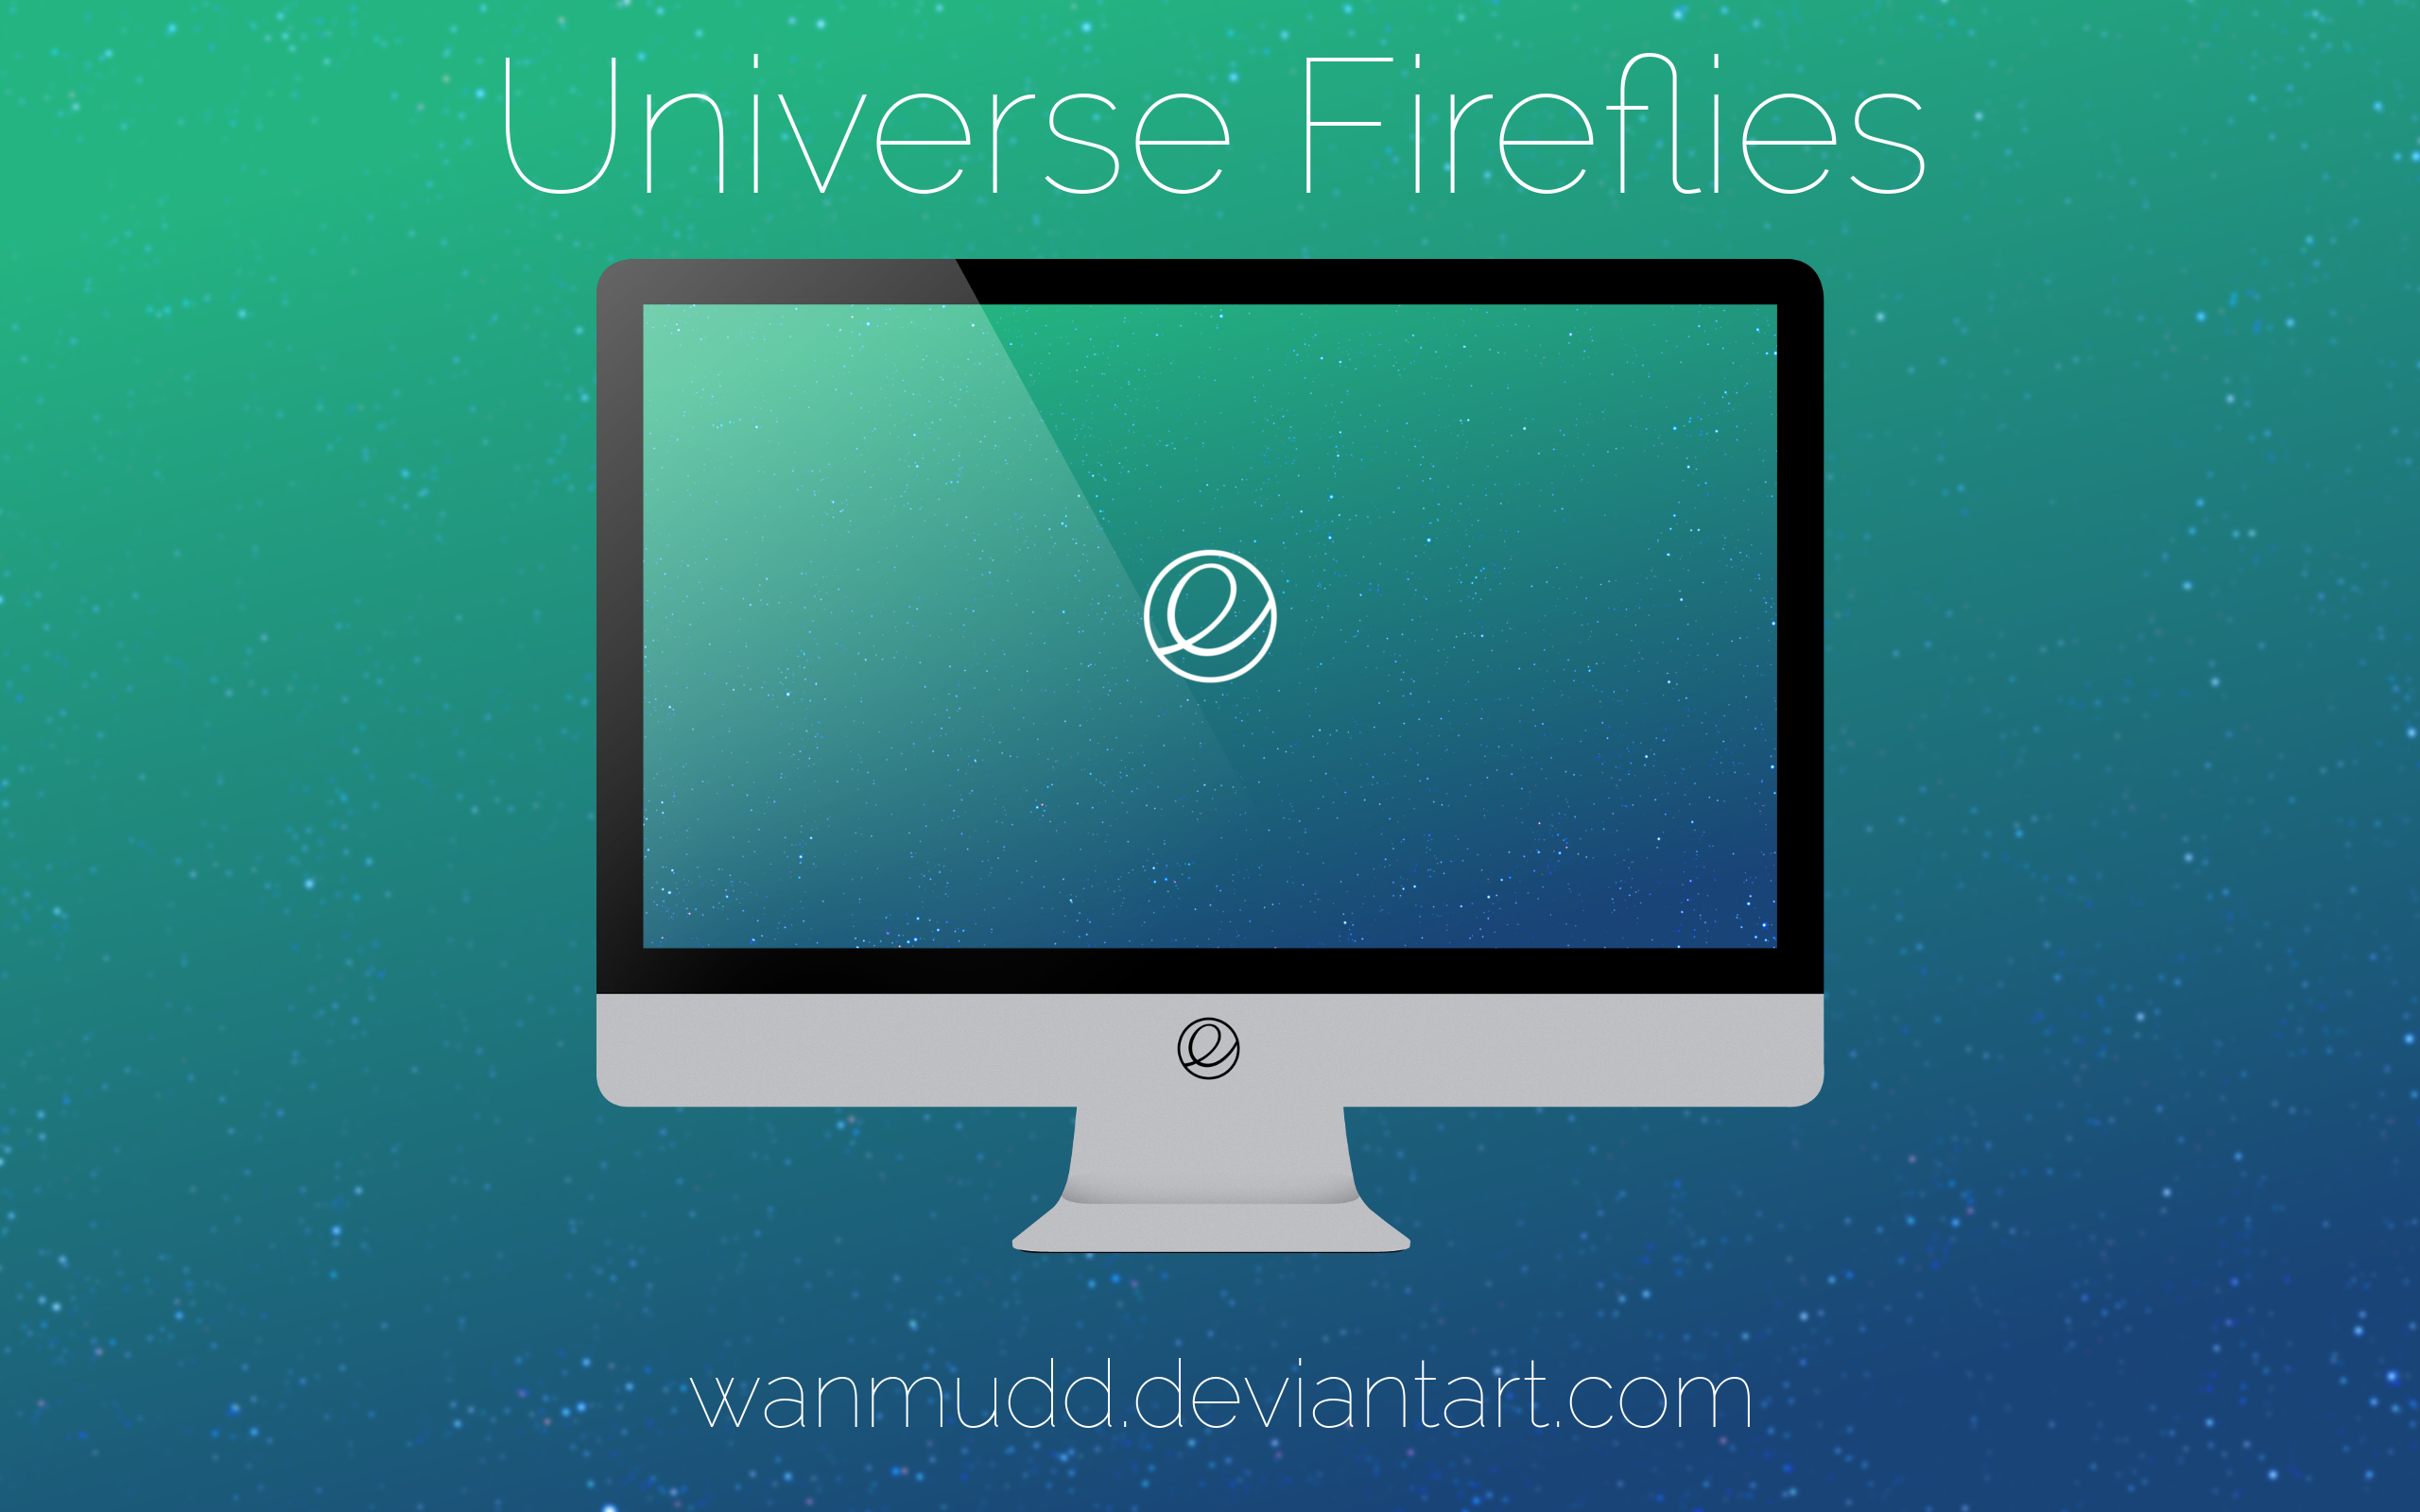 Universe Fireflies (With elementaryOS Logo) by WanMudD